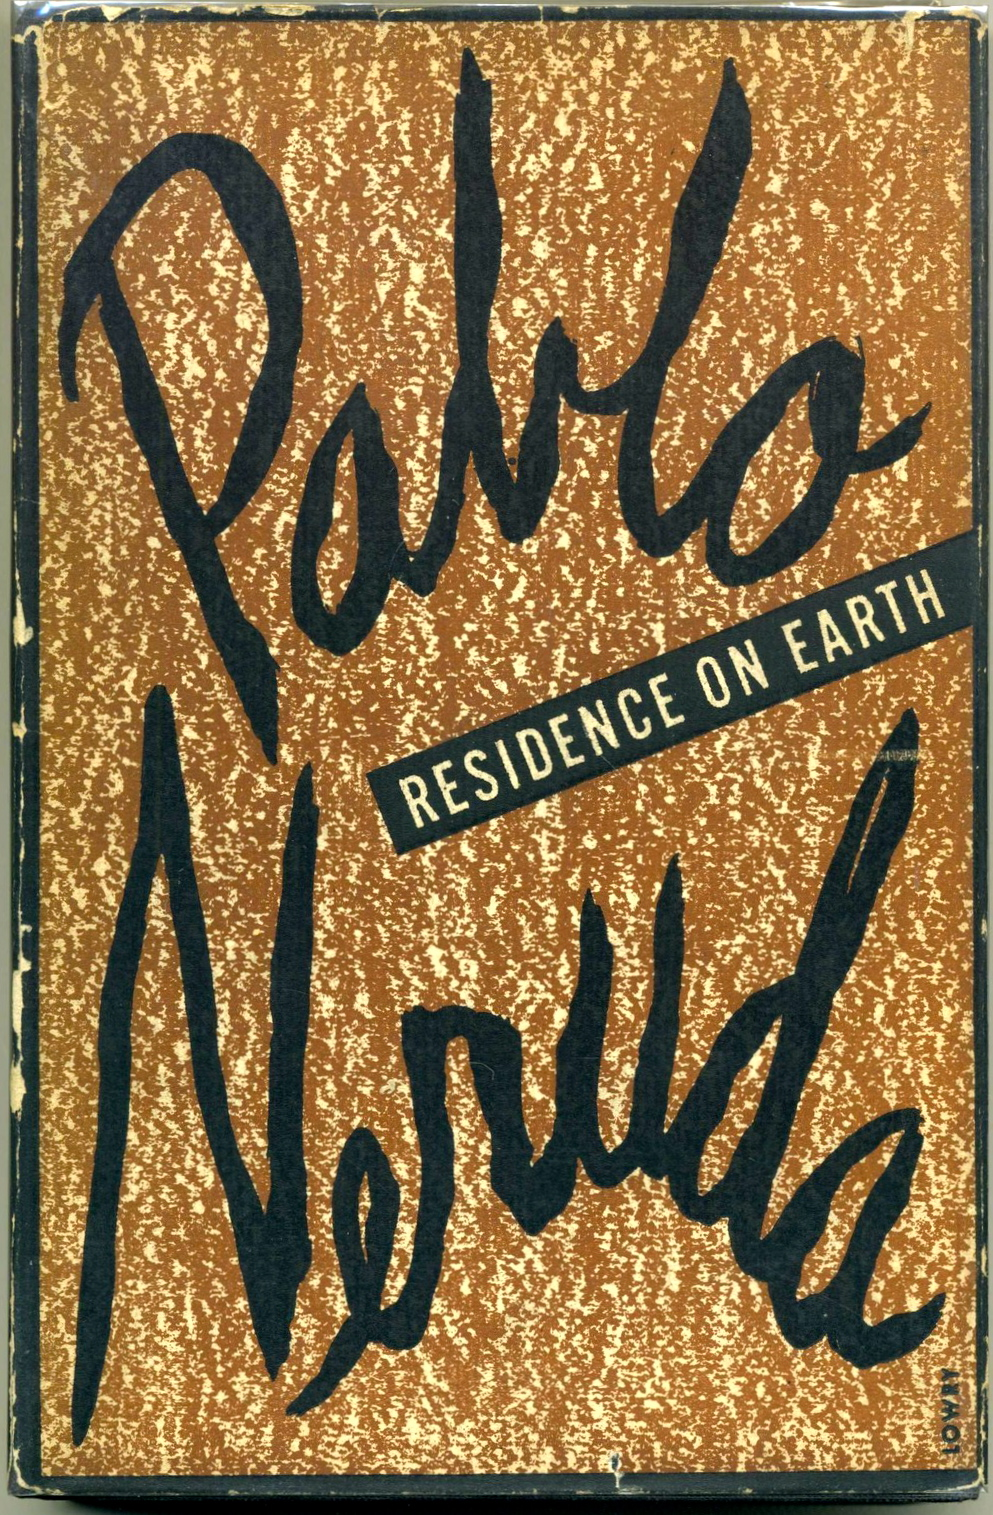 Here's one not designed by Alvin Lustig; Pablo Neruda, Residence On Earth. Norfolk: New Directions, (1946). First edition in English.